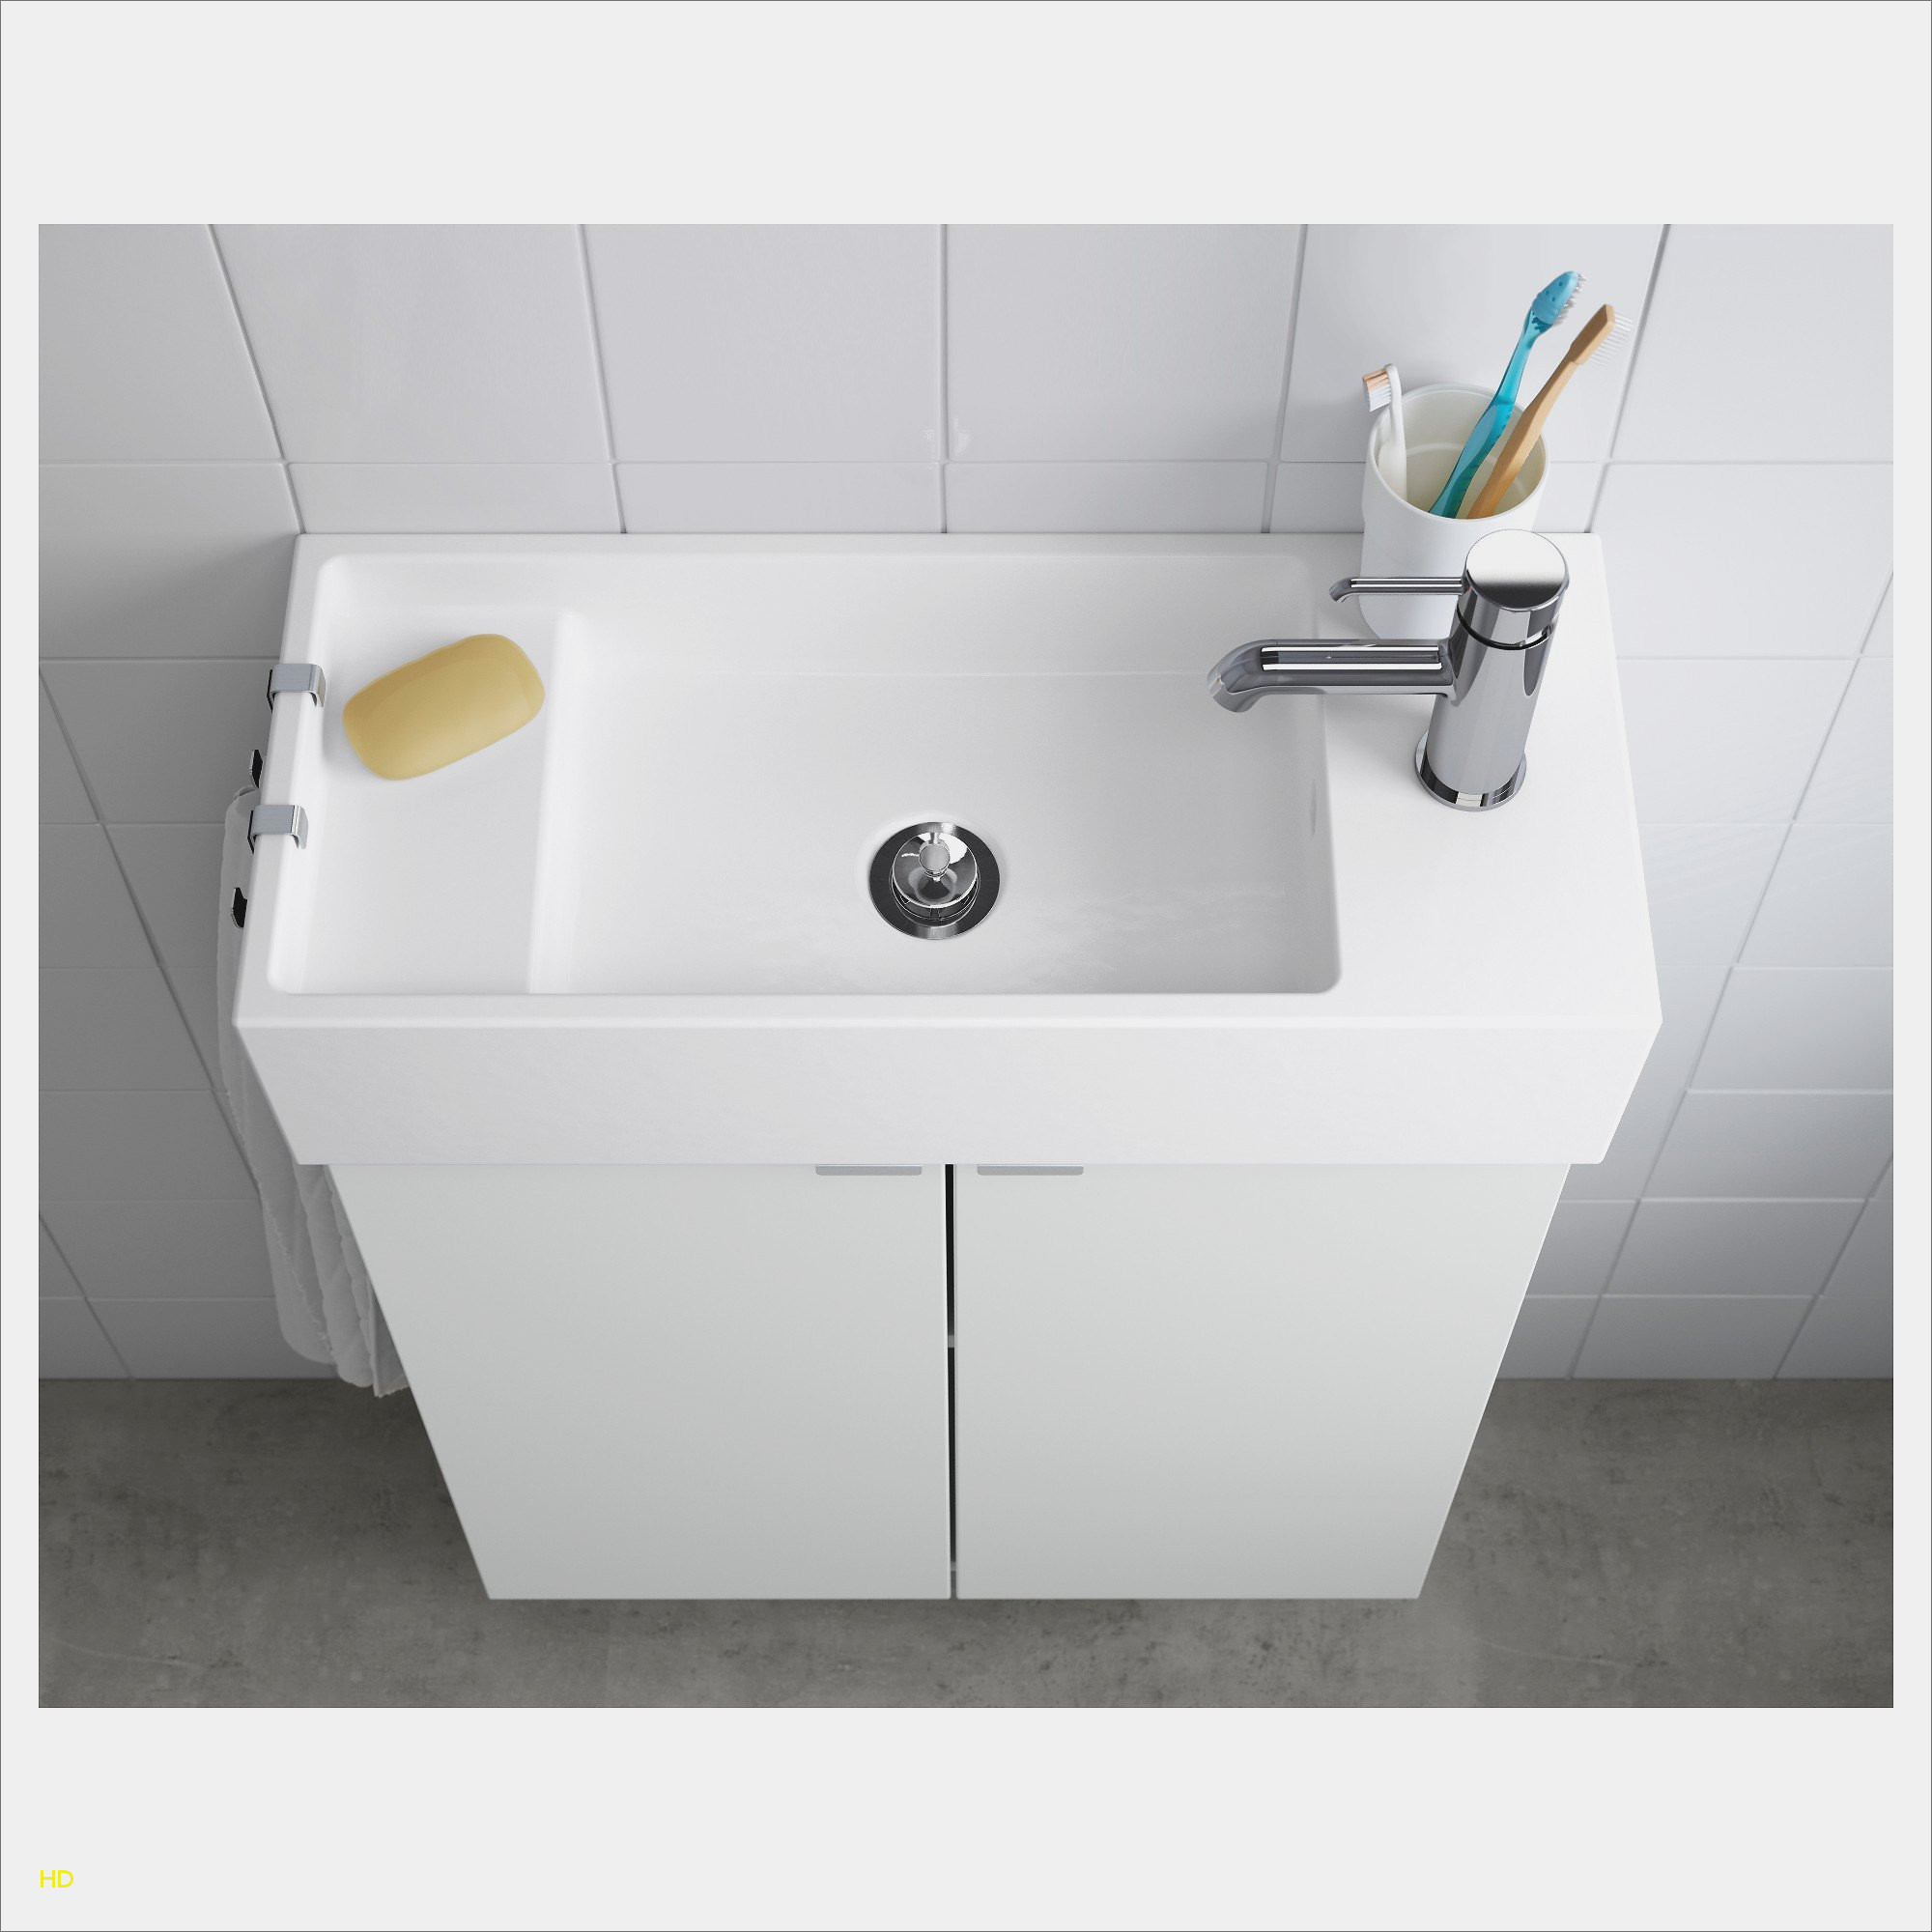 Double Vasque Salle De Bain Ikea Meilleur De Collection Bain Author at Bain Page 63 Of 63